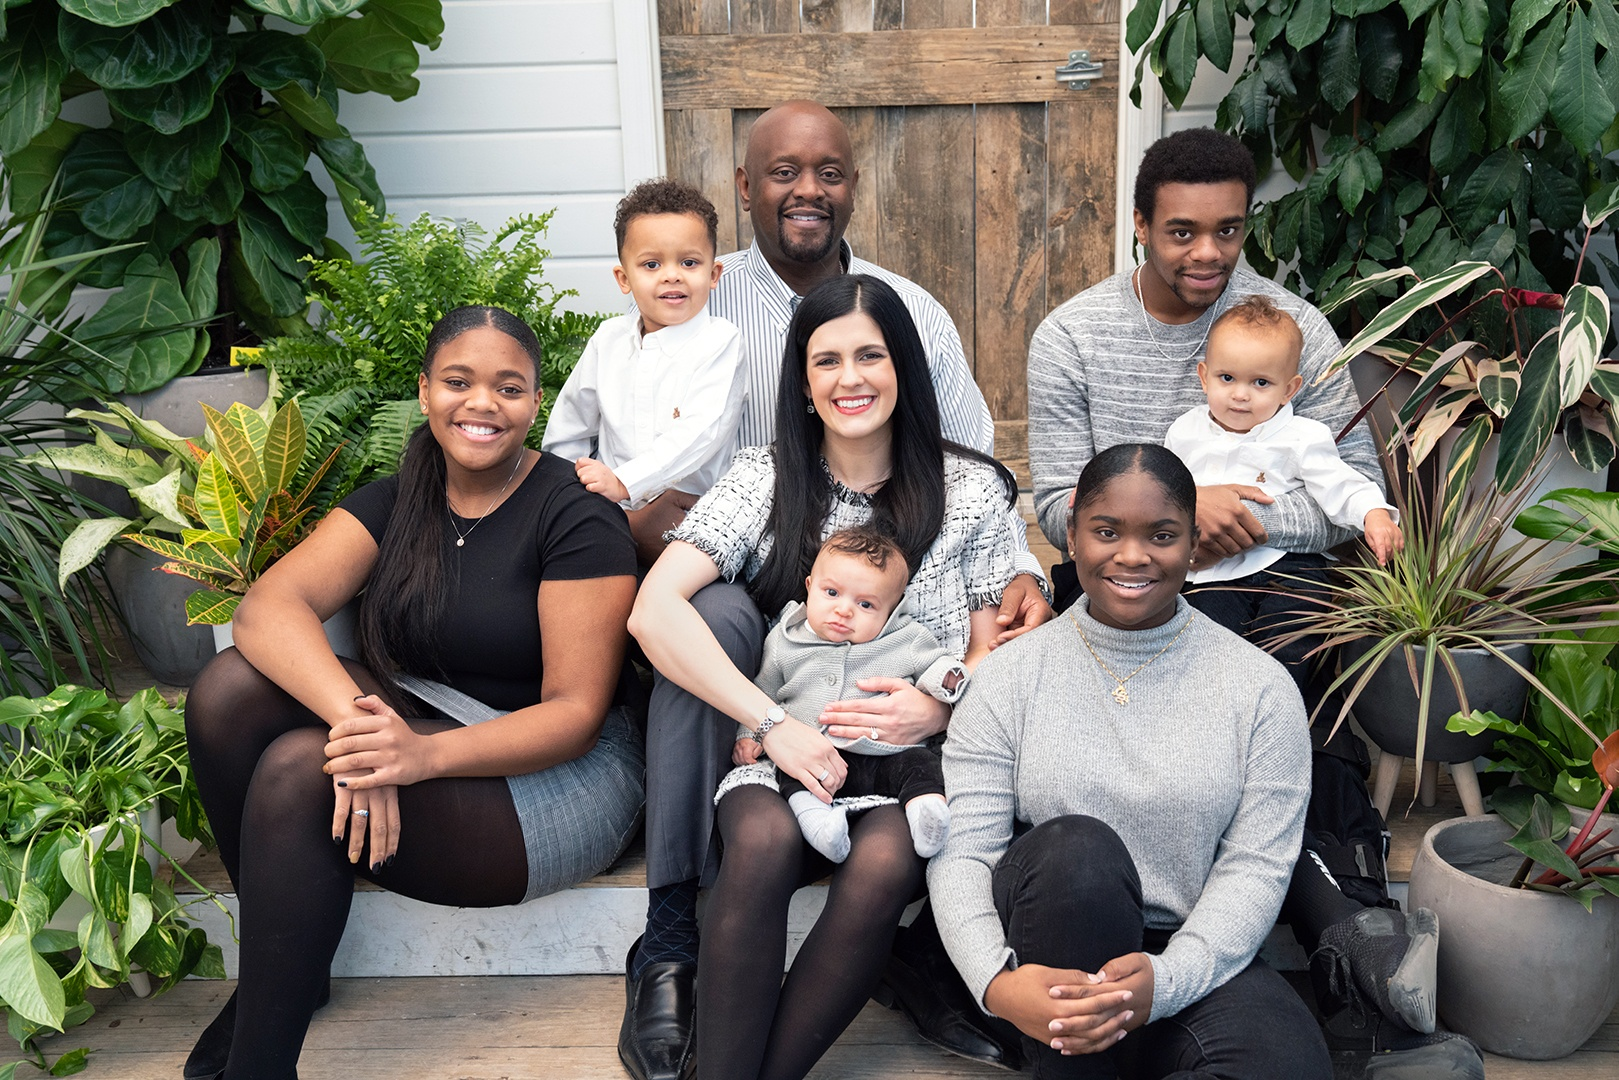 Dr. Michael Reed and his family photo